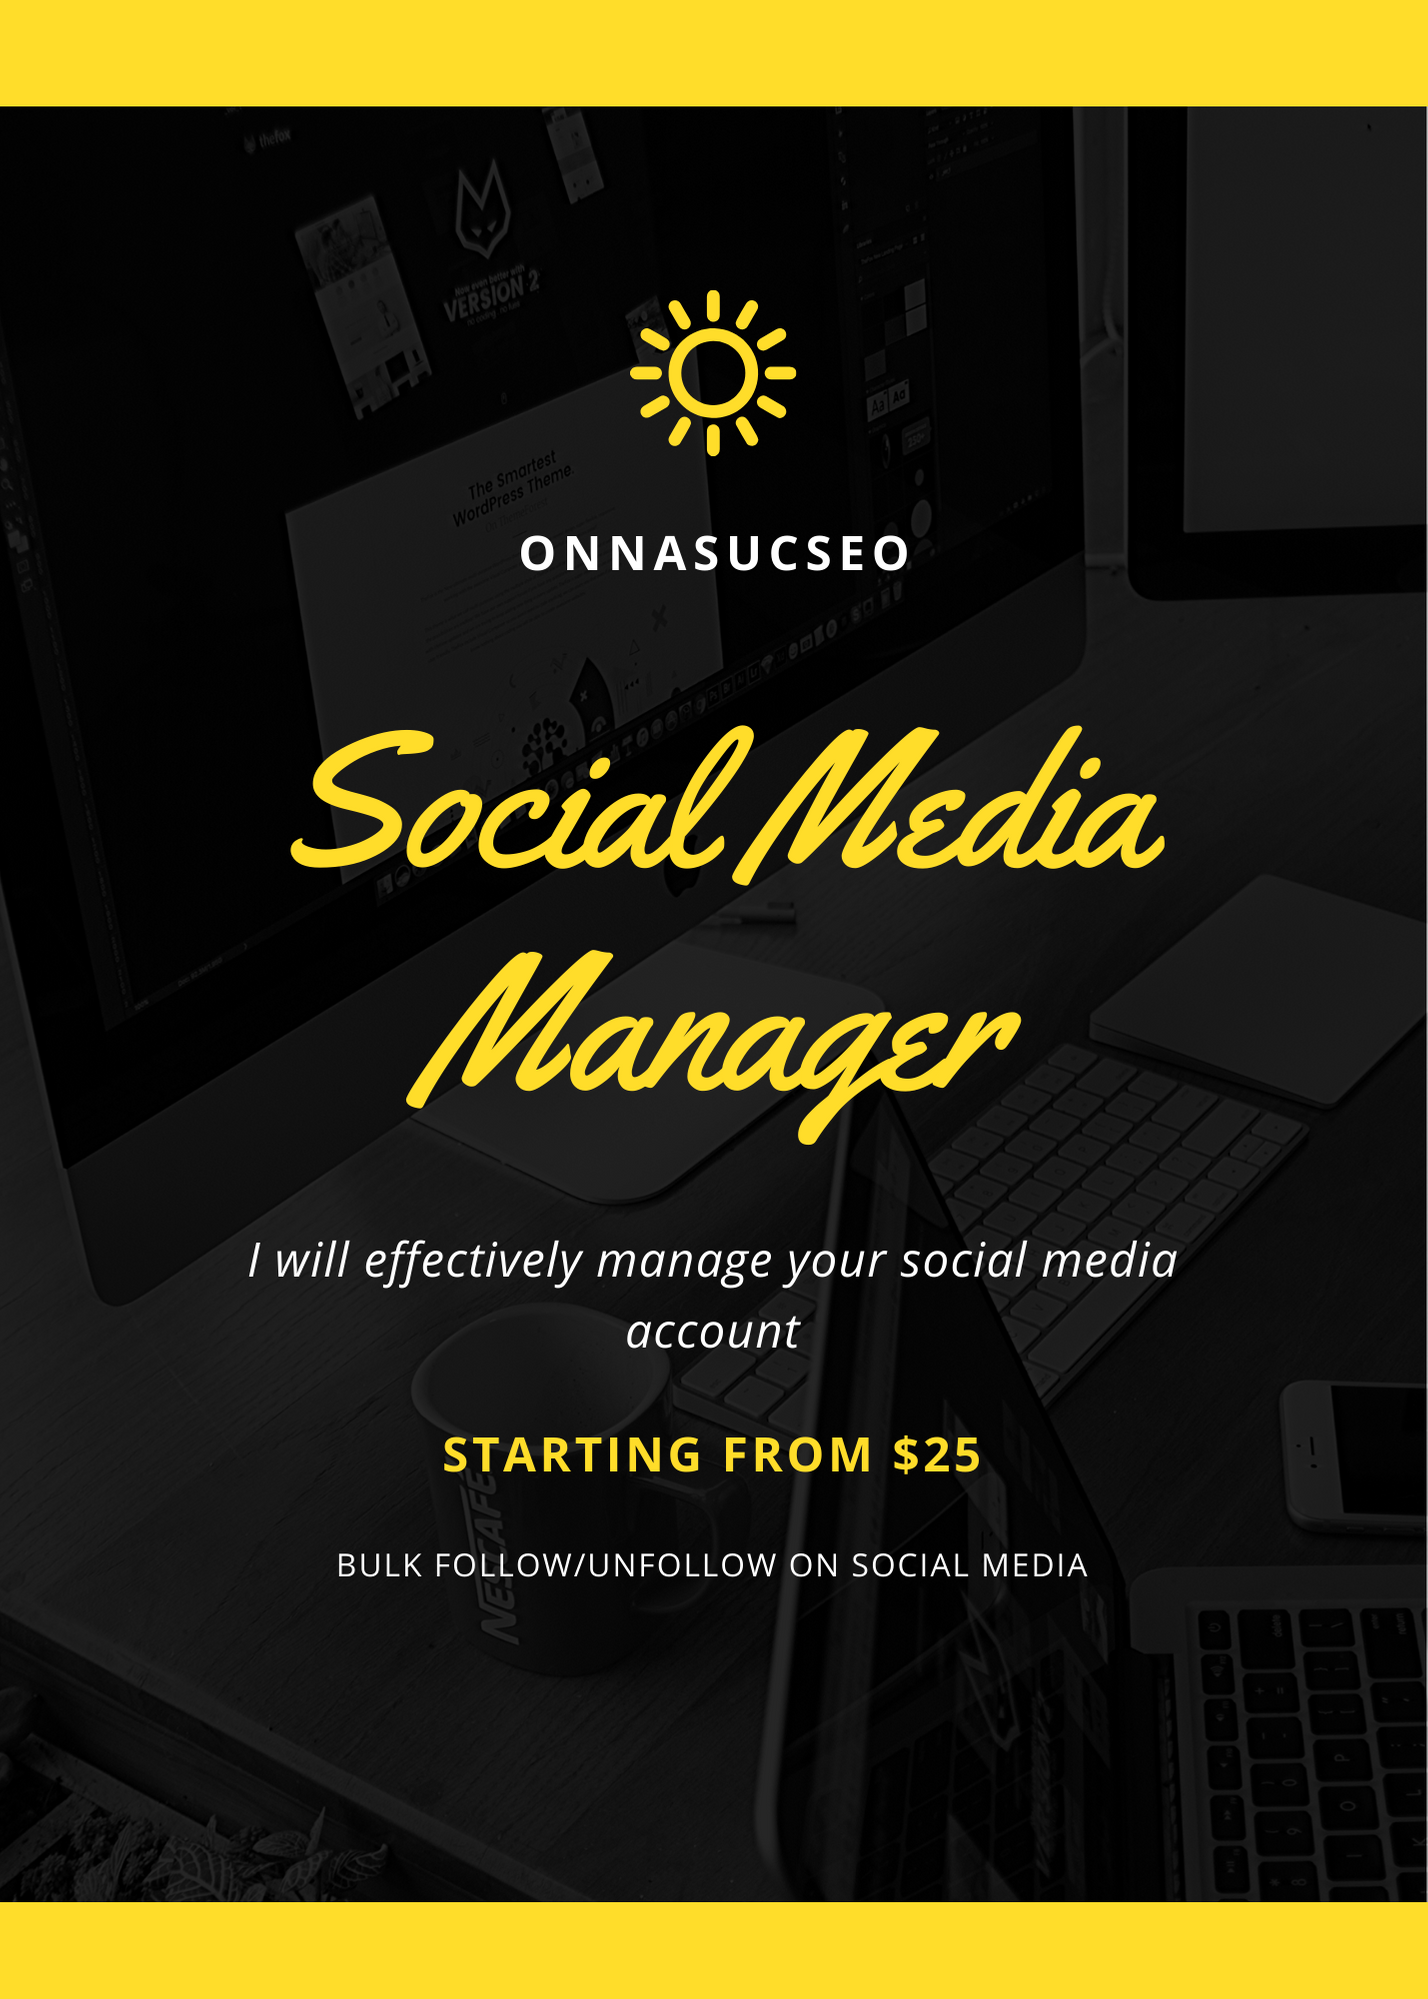 I will be your trusted social media manager